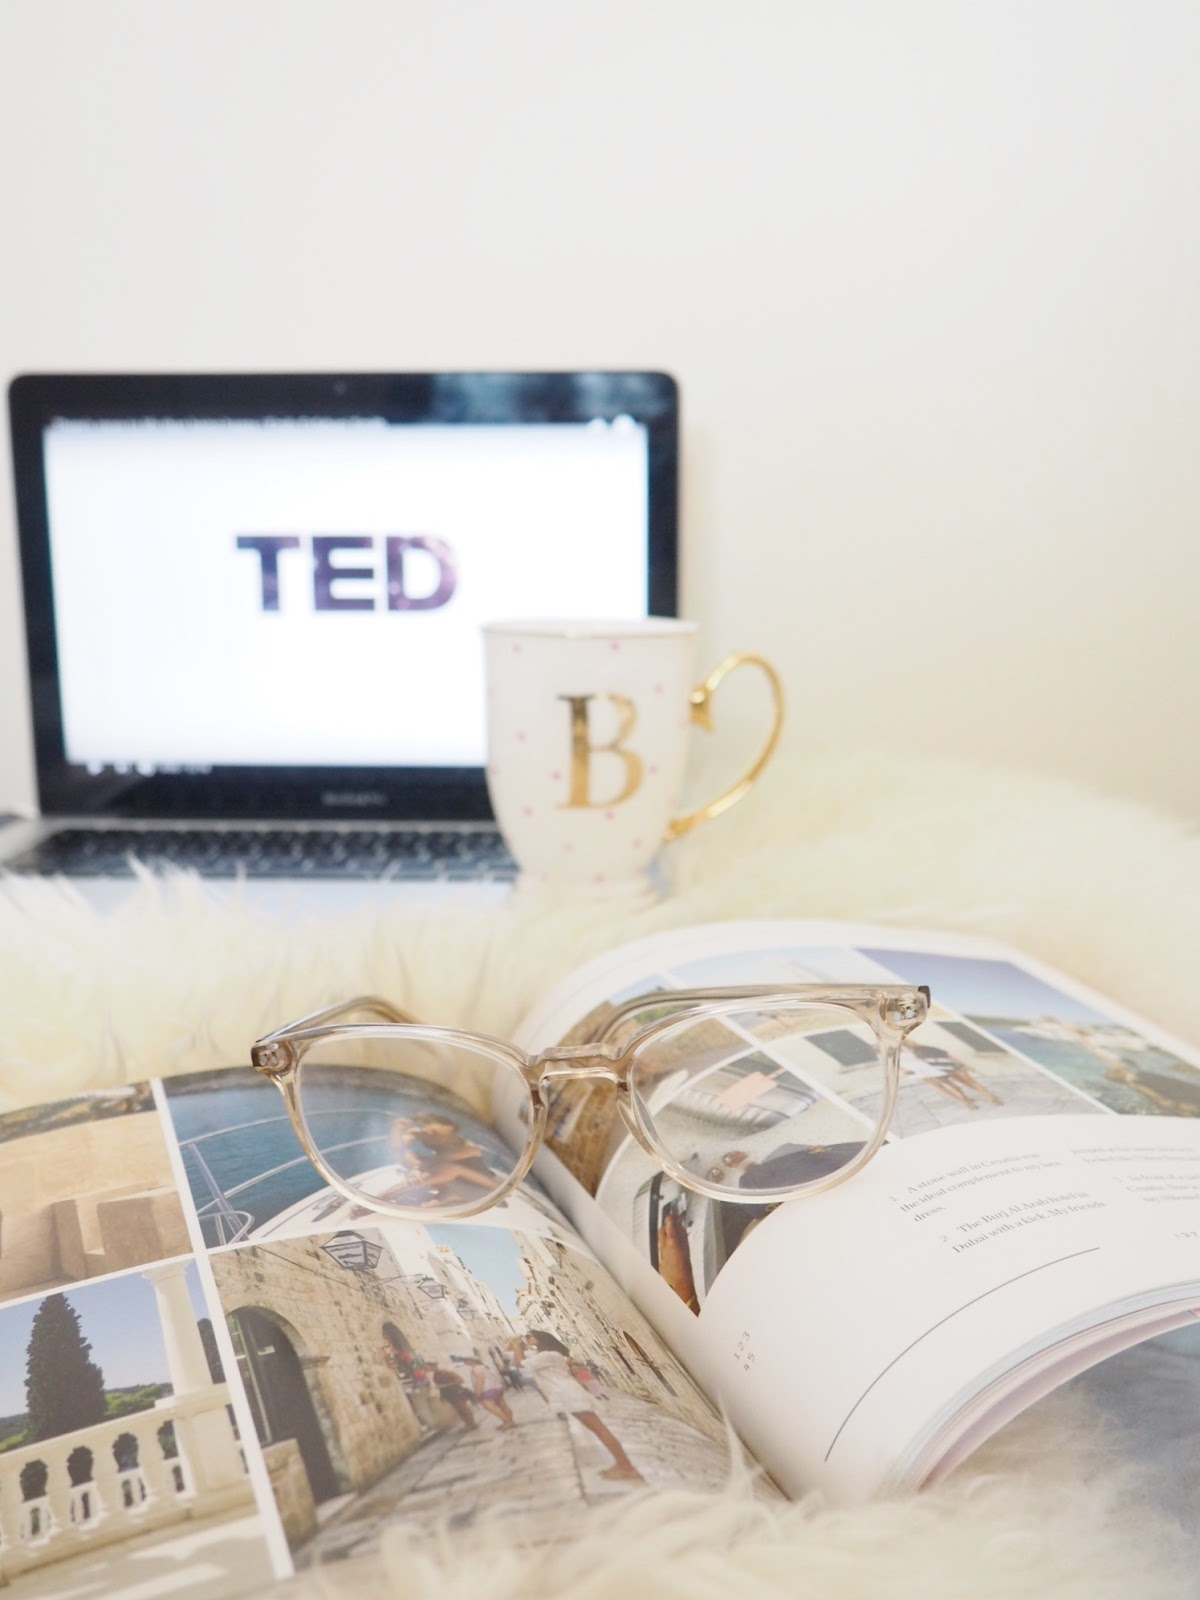 Ted Talk Laptop